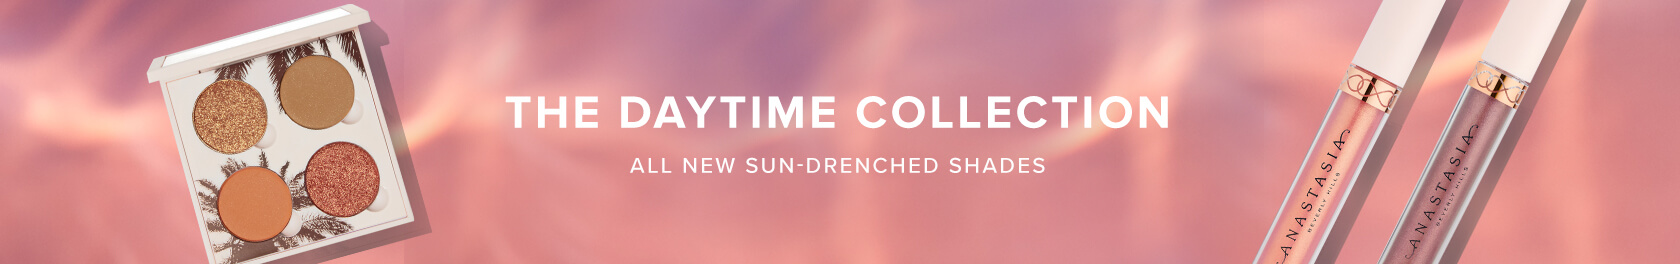 New! The Daytime Collection with Limited Edition Looks